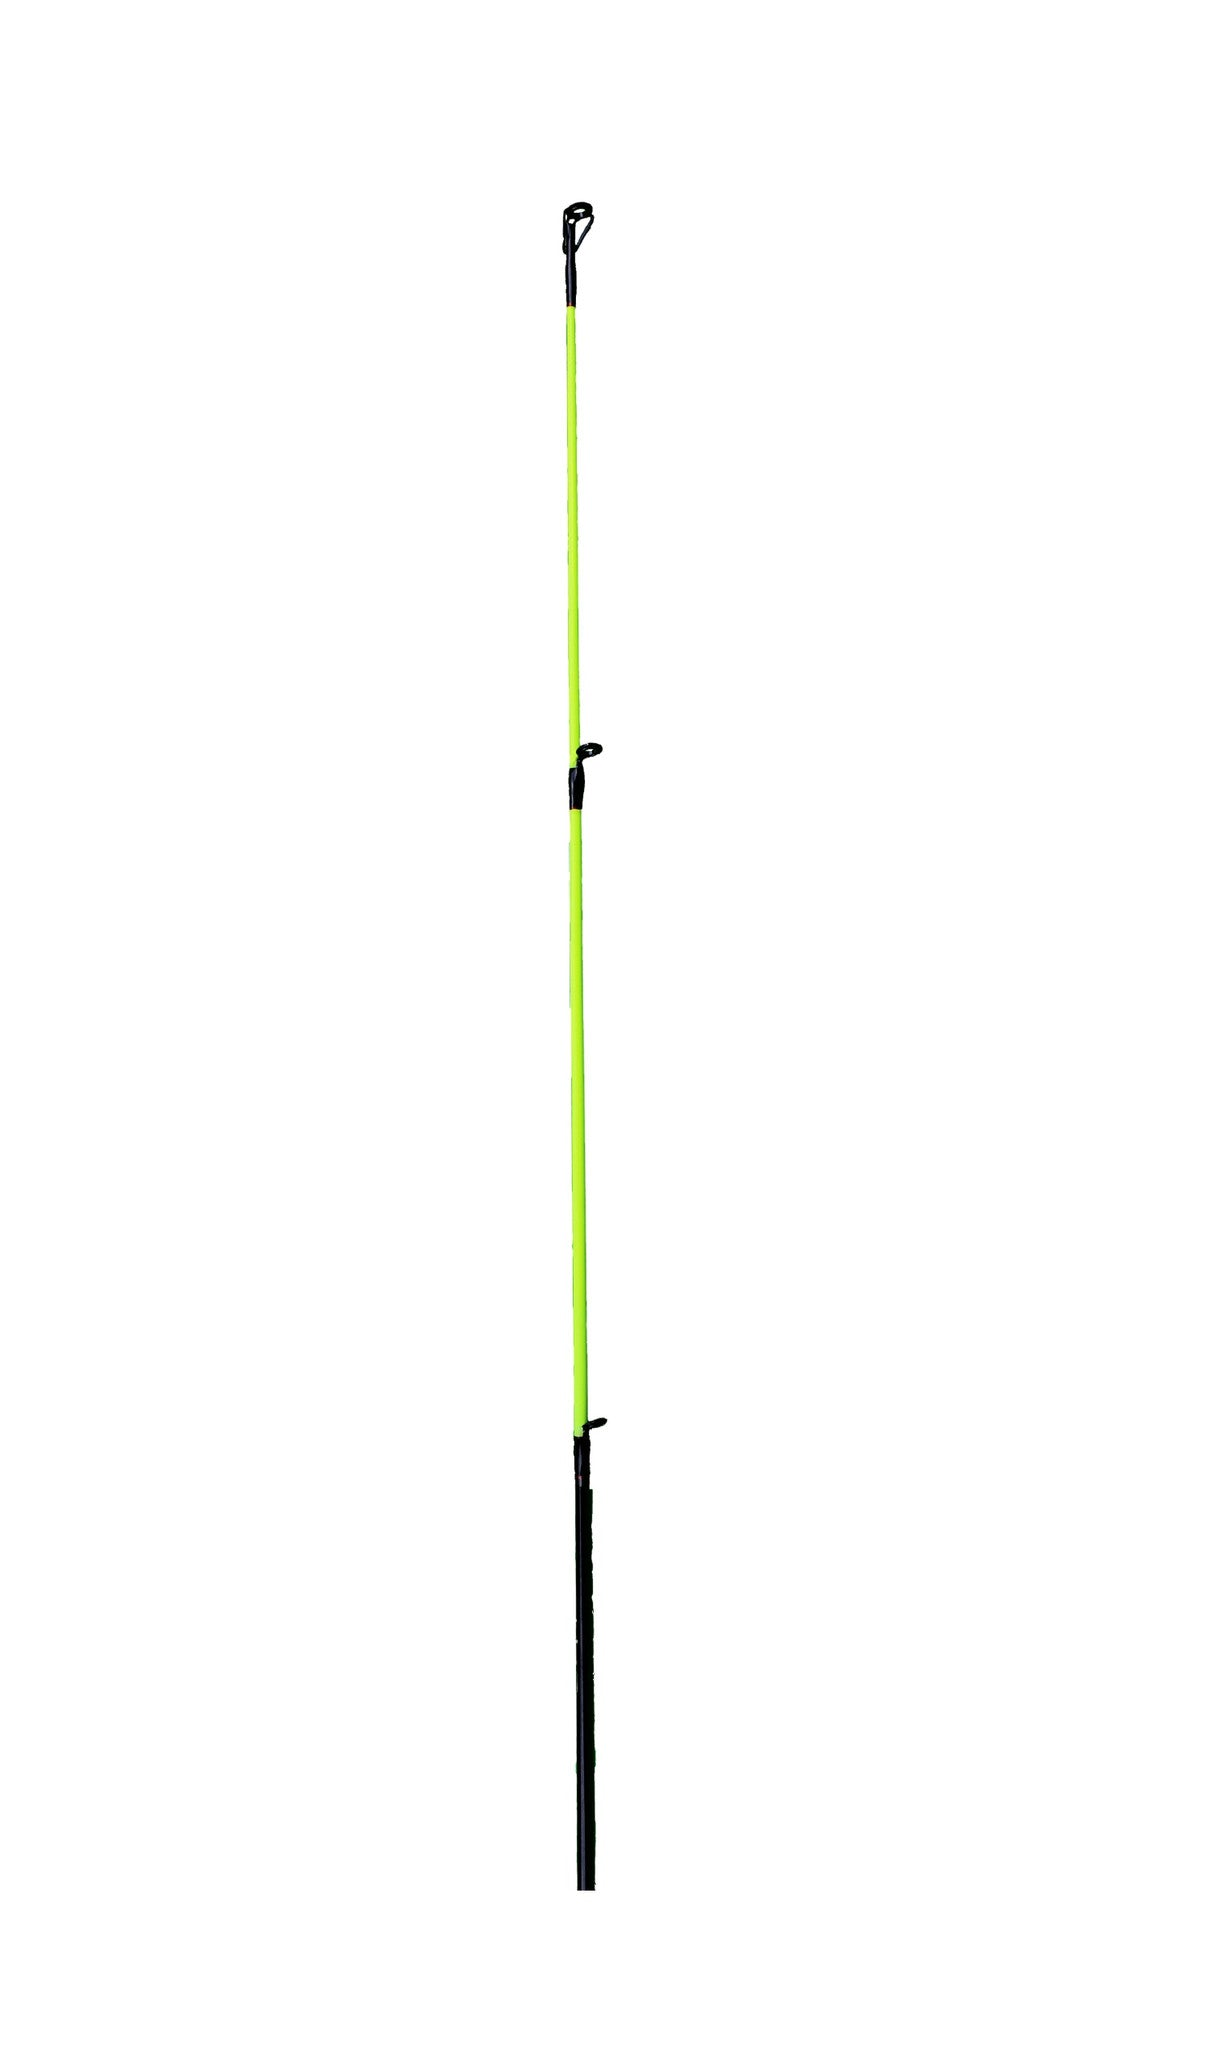 Cypress Creek Crappie Rod